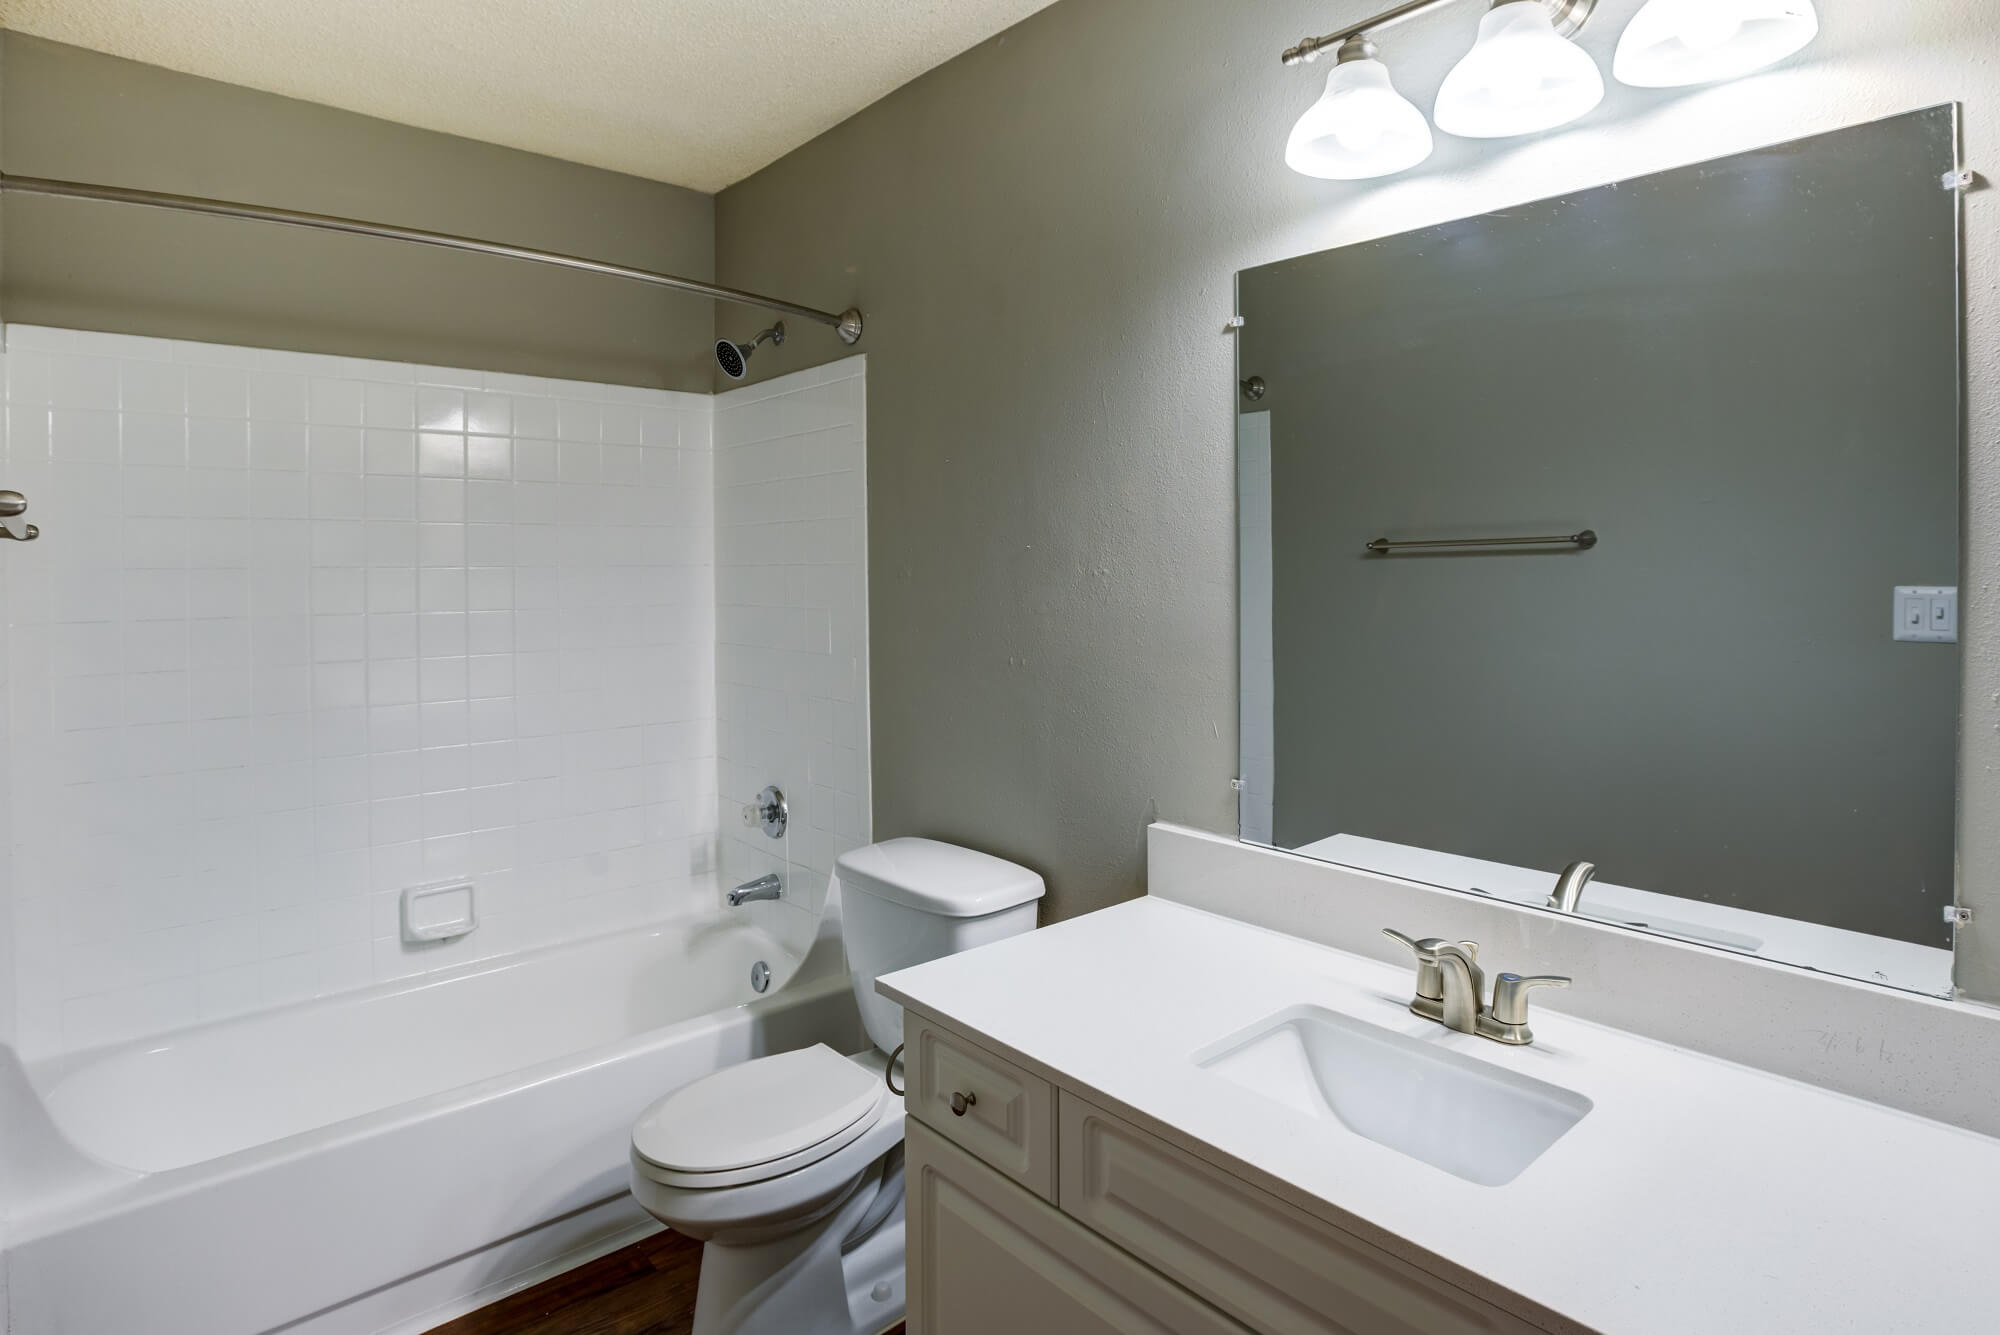 bathroom with single sink, mirror, overhead lighting, toilet, and tub.